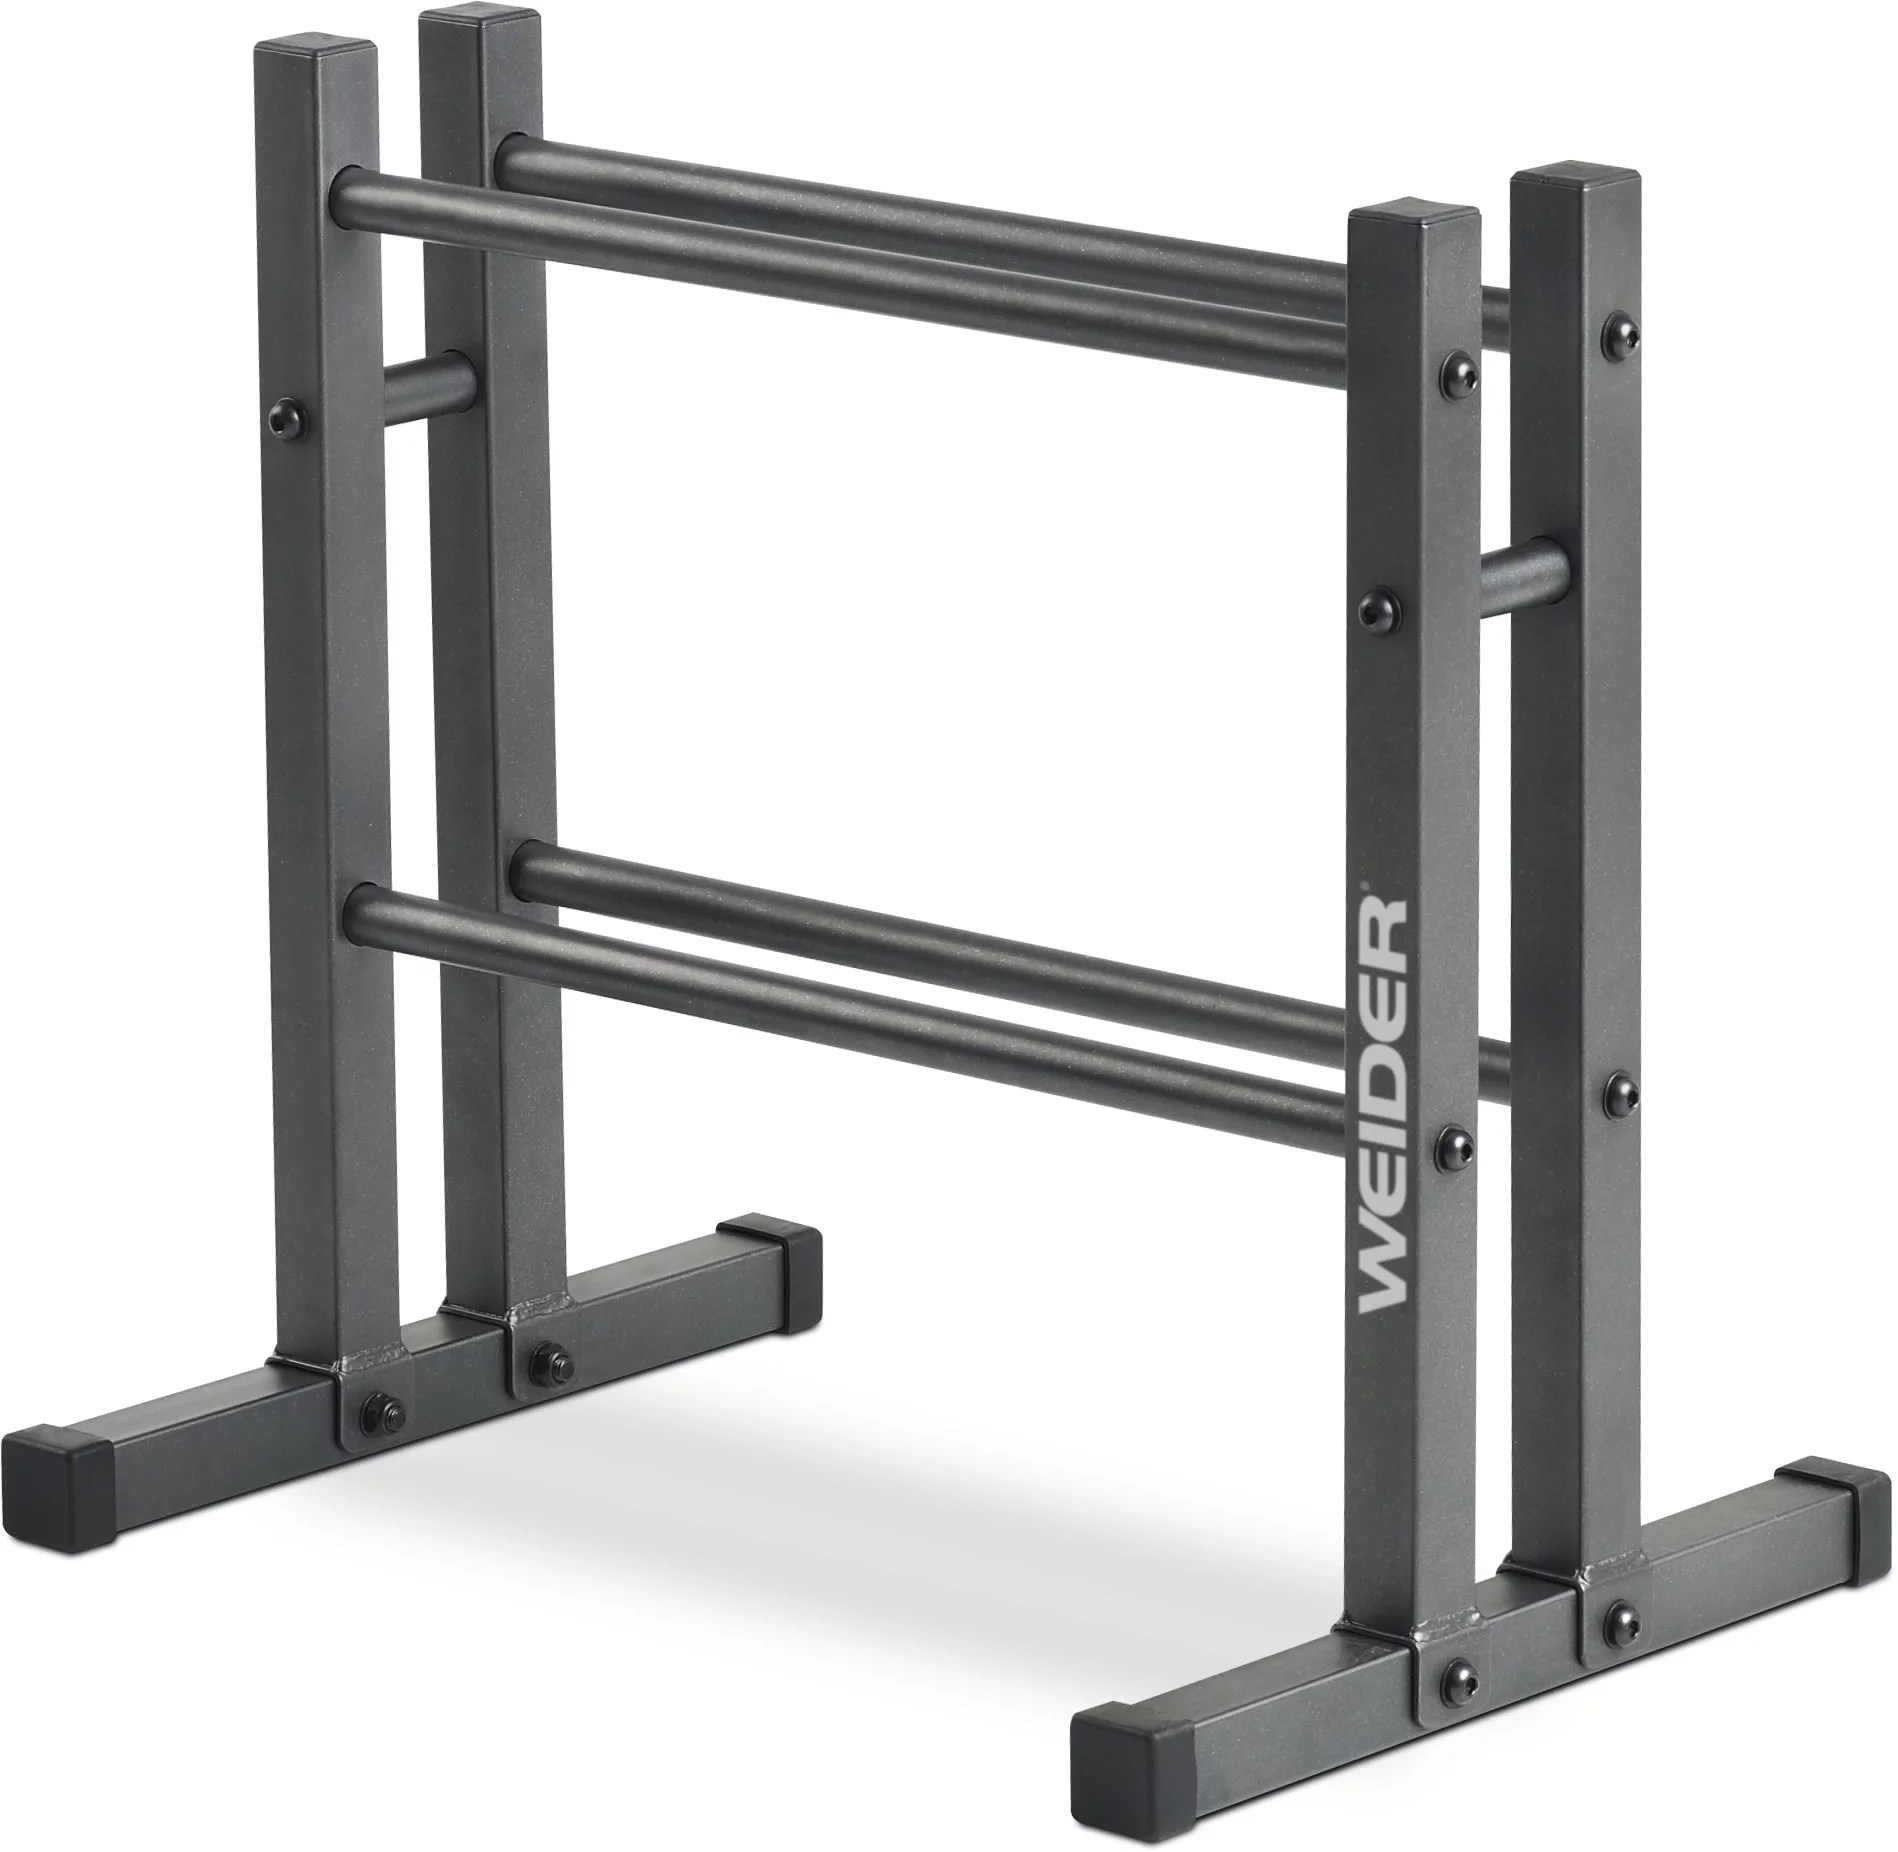 weider two tier utility rack for dumbbell kettlebell and medicine ball storage walmart com